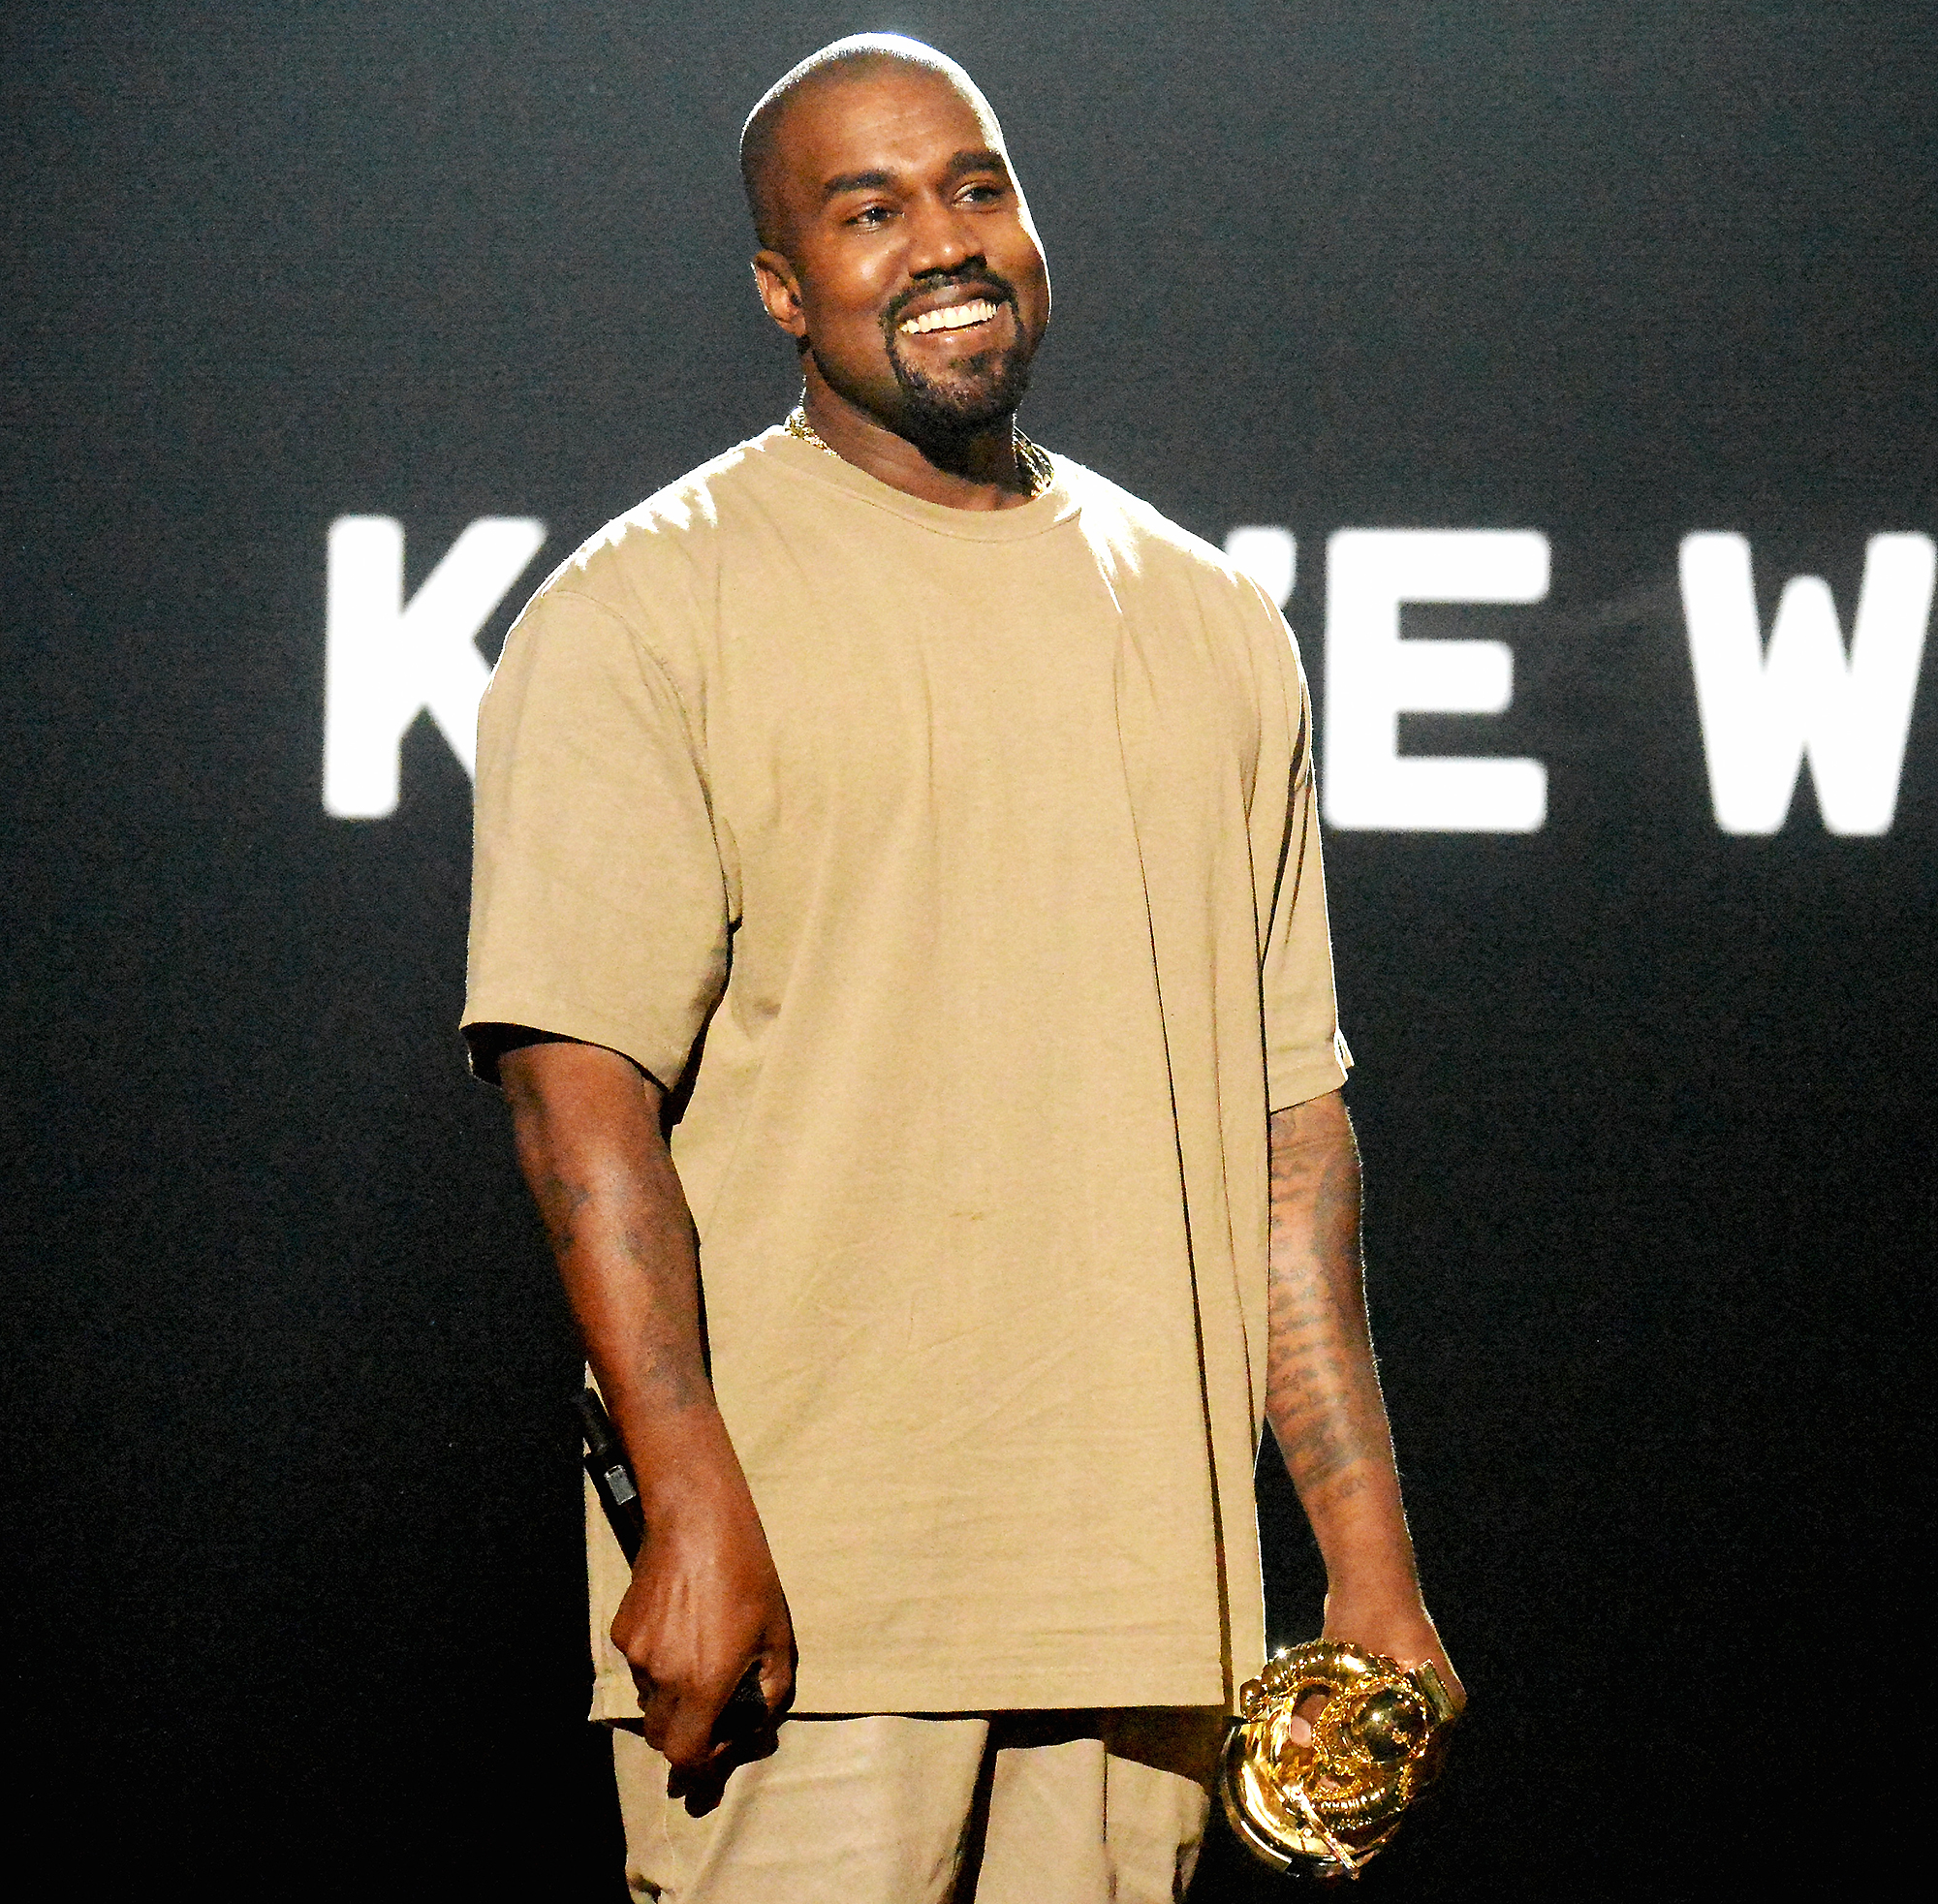 Kanye West Calls Donald Trump 'My Brother' During Twitter Love